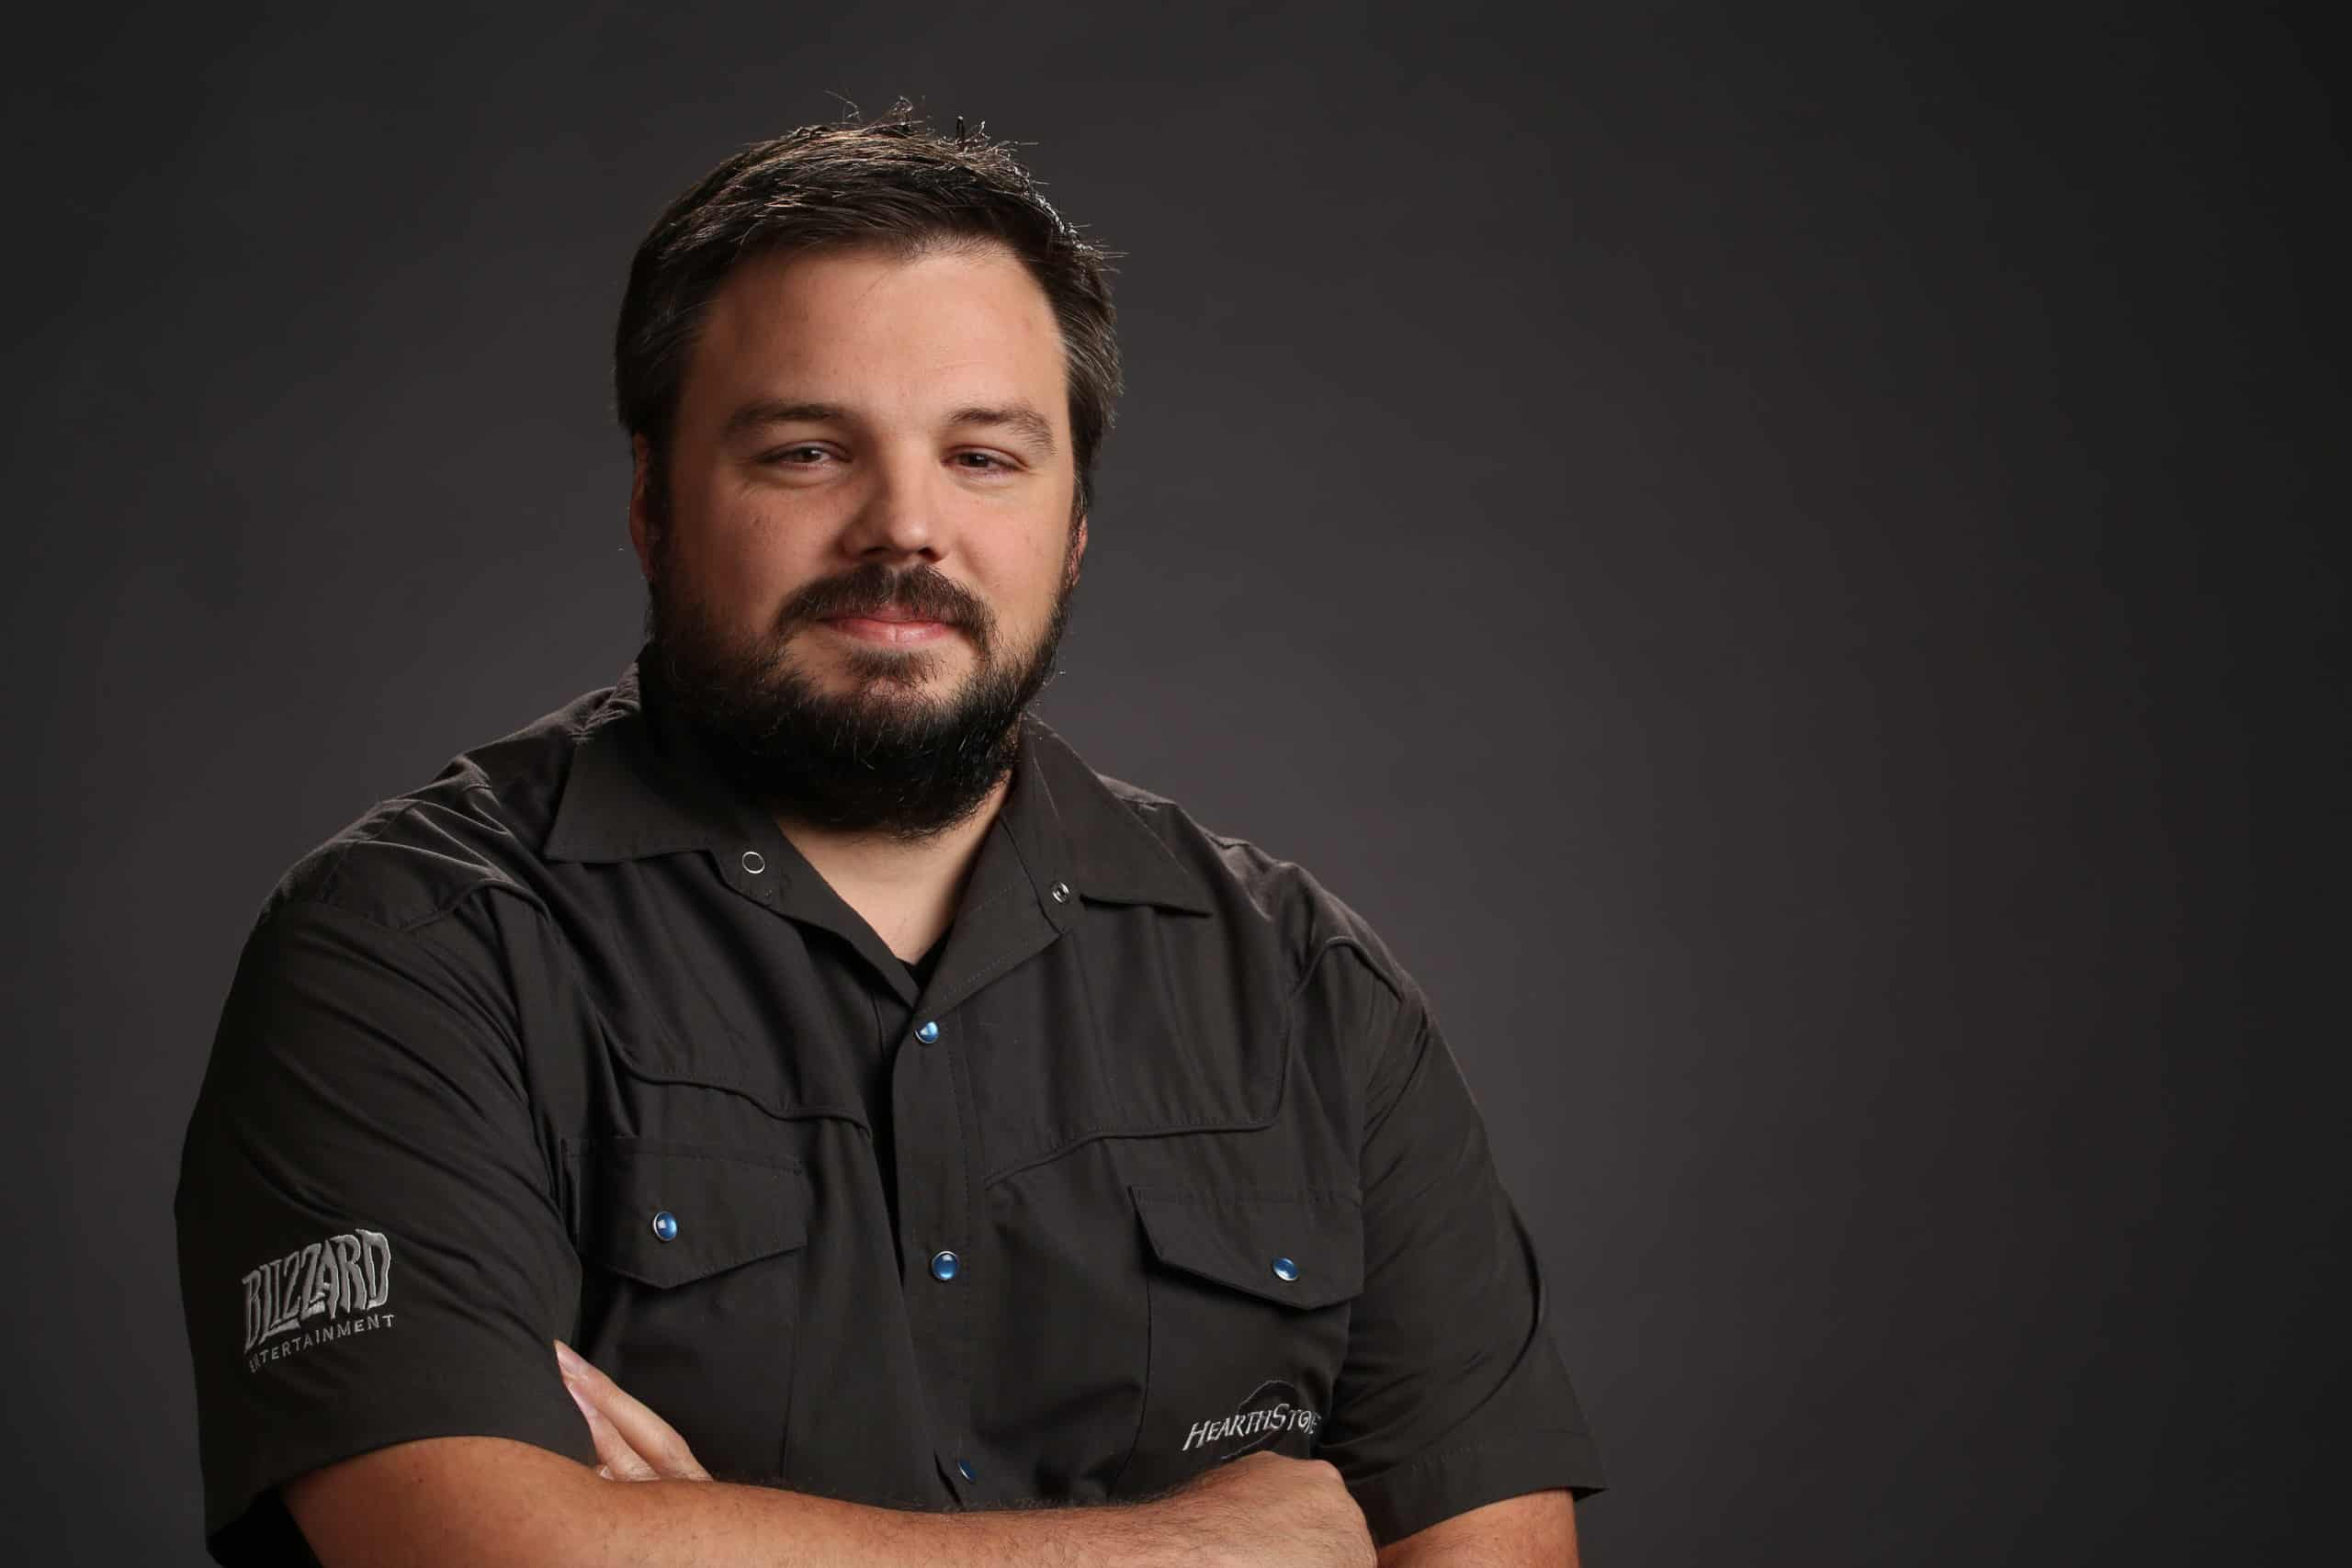 """BlizzConline interview: """"Hearthstone has become a platform for card games"""""""